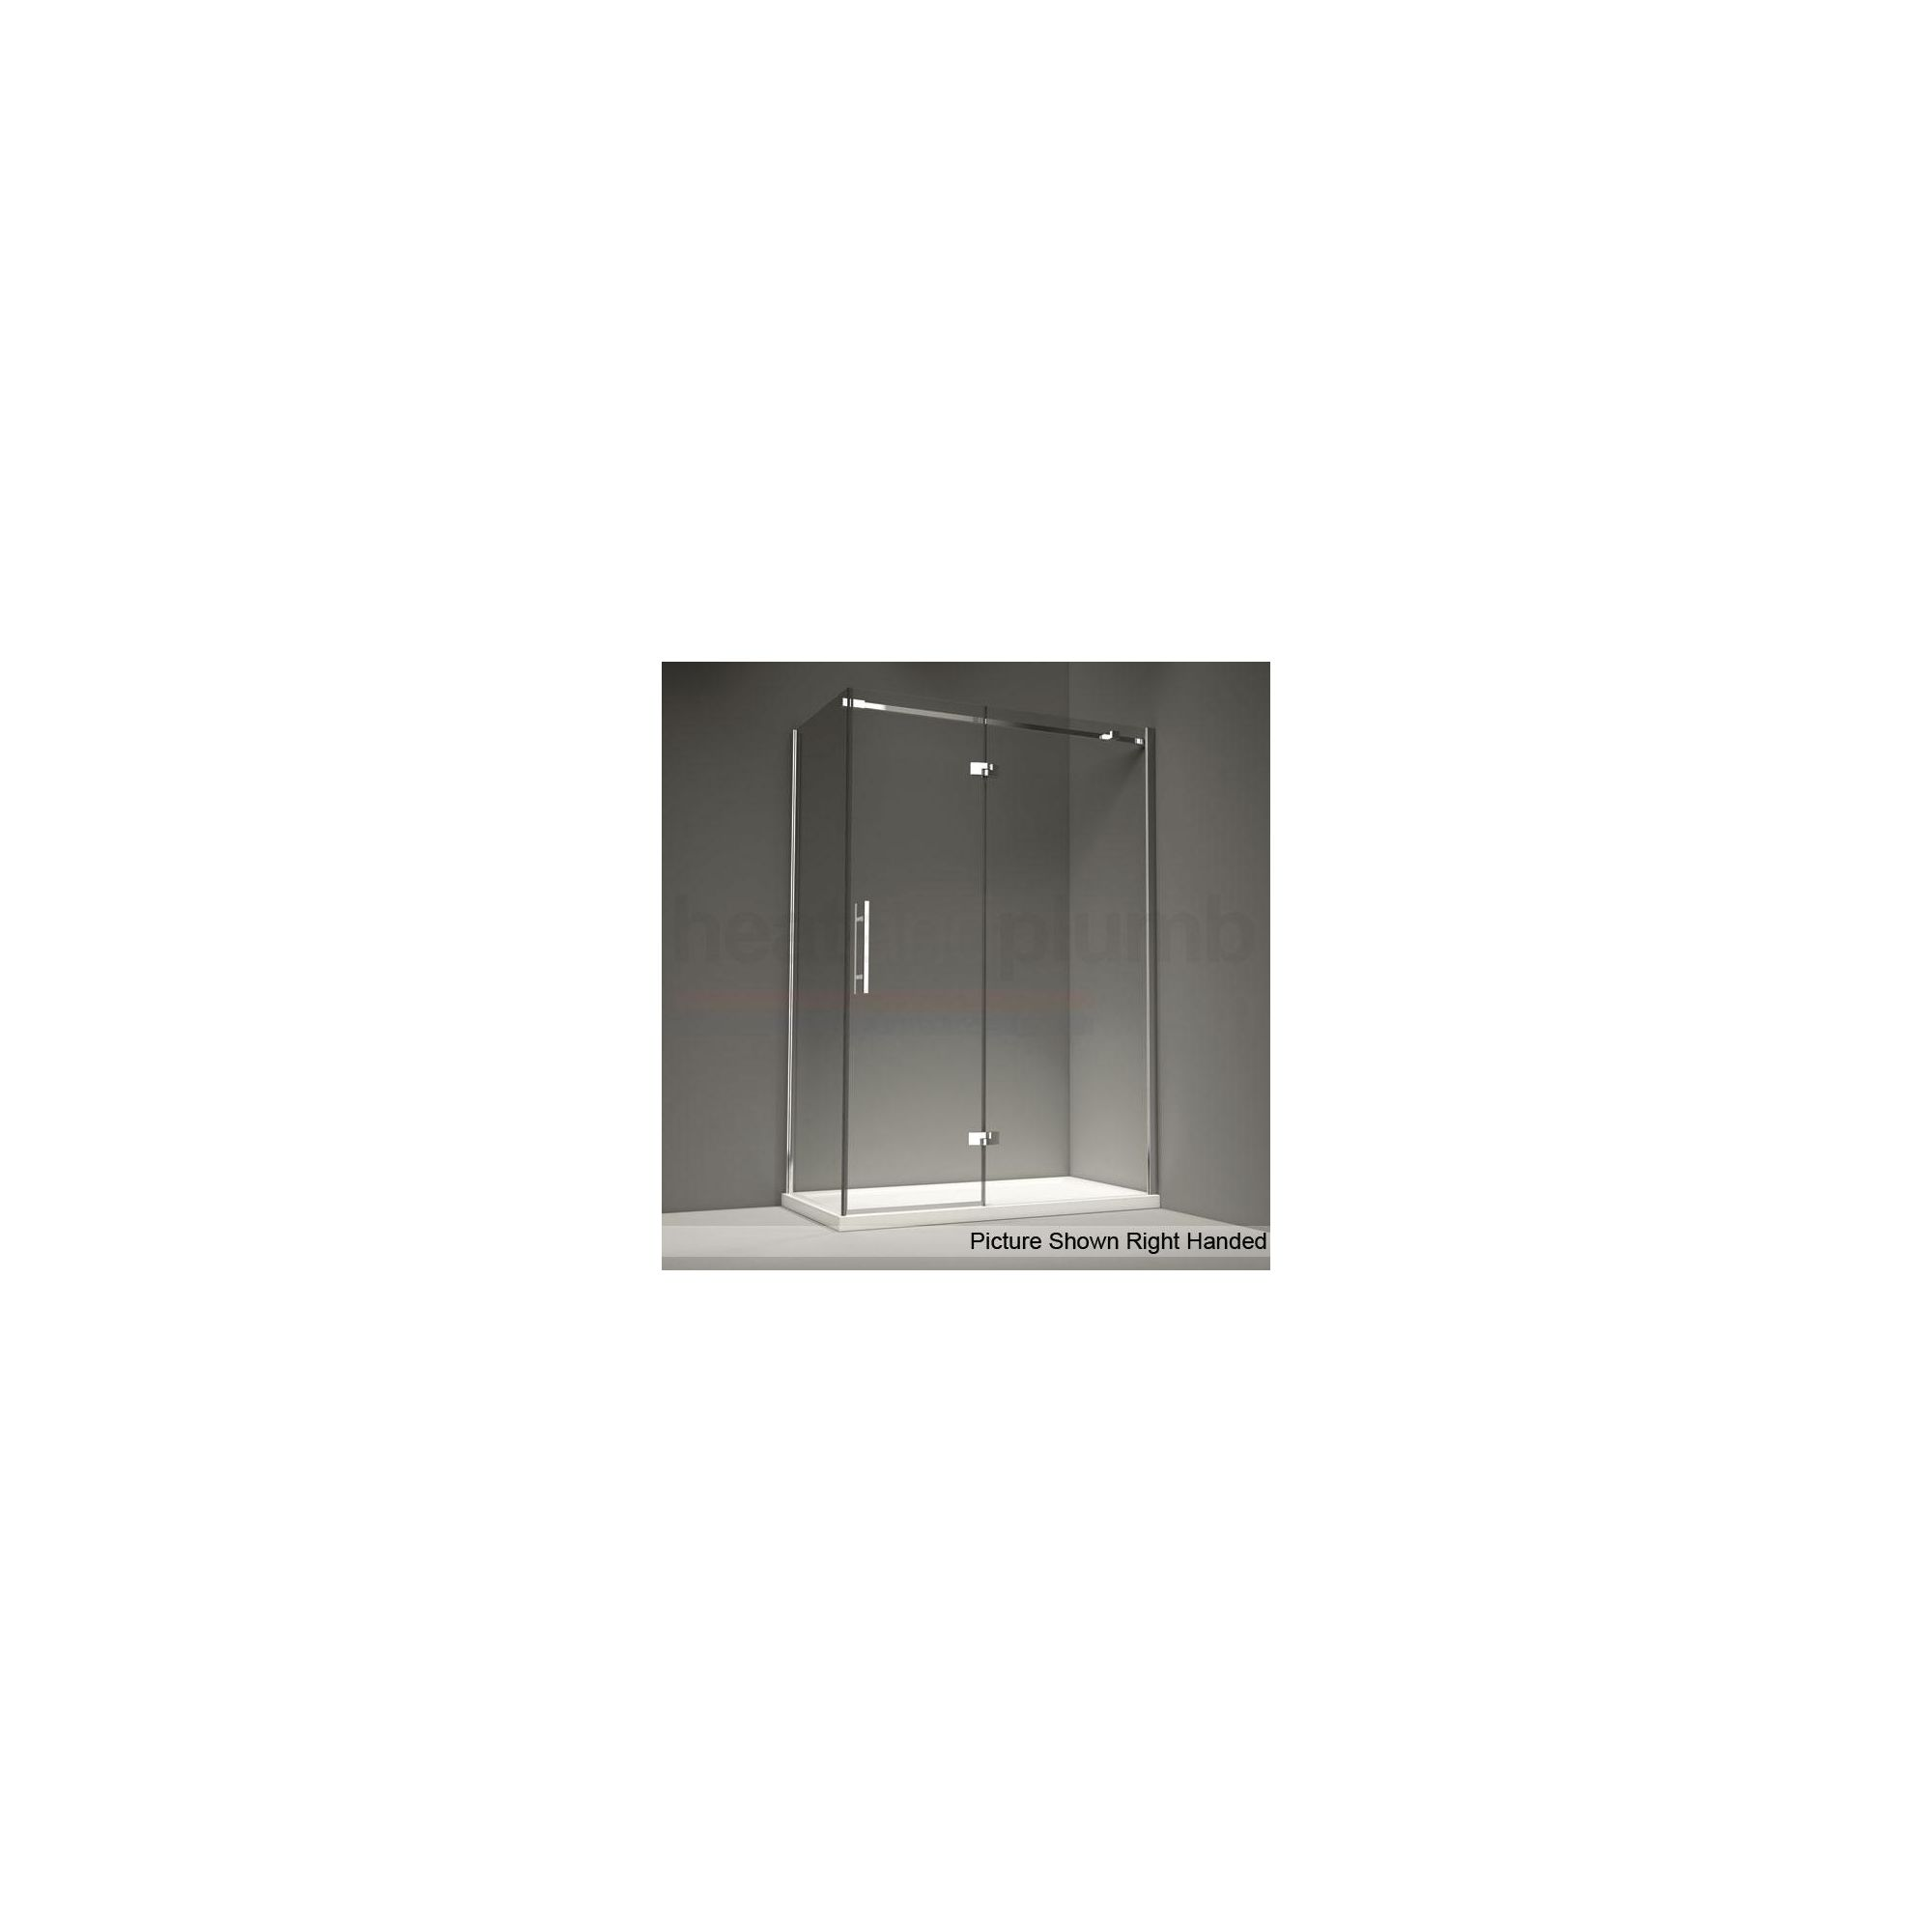 Merlyn Series 9 Inline Hinged Door Shower Enclosure, 1200mm x 900mm, Low Profile Tray, 8mm Glass at Tesco Direct